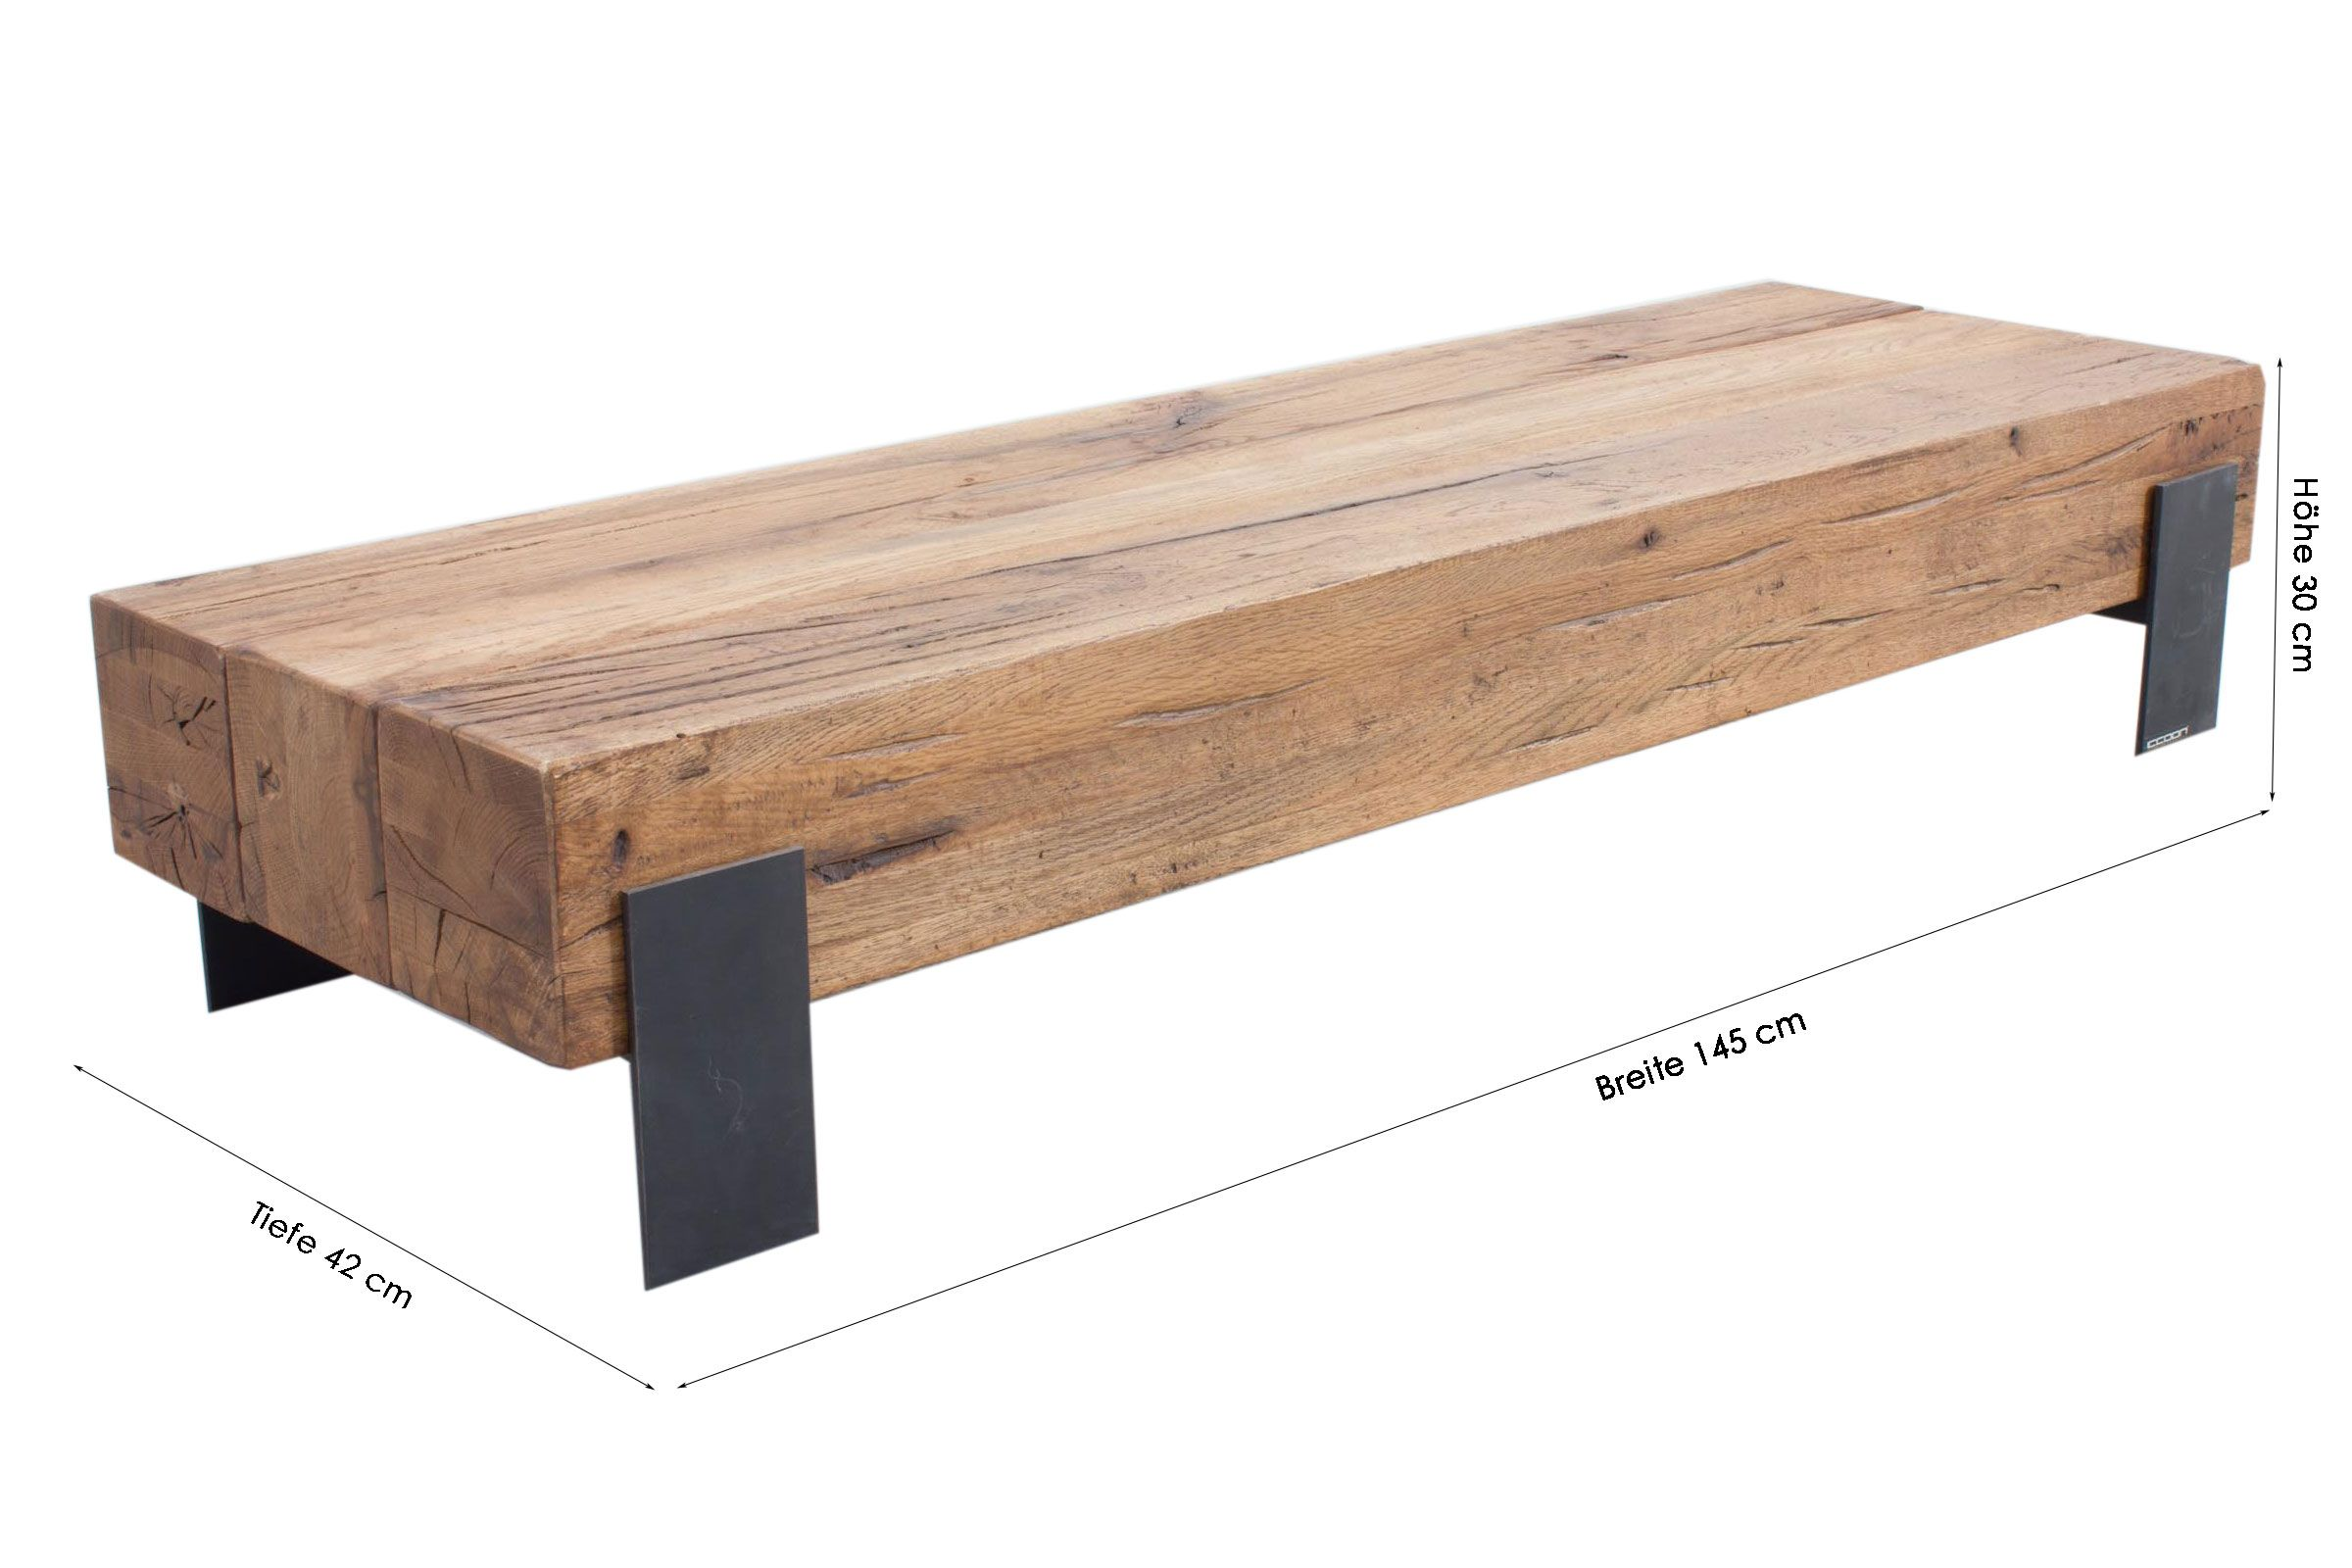 Iccoon Couchtisch BEAM in Eiche | Furniture | Pinterest ...